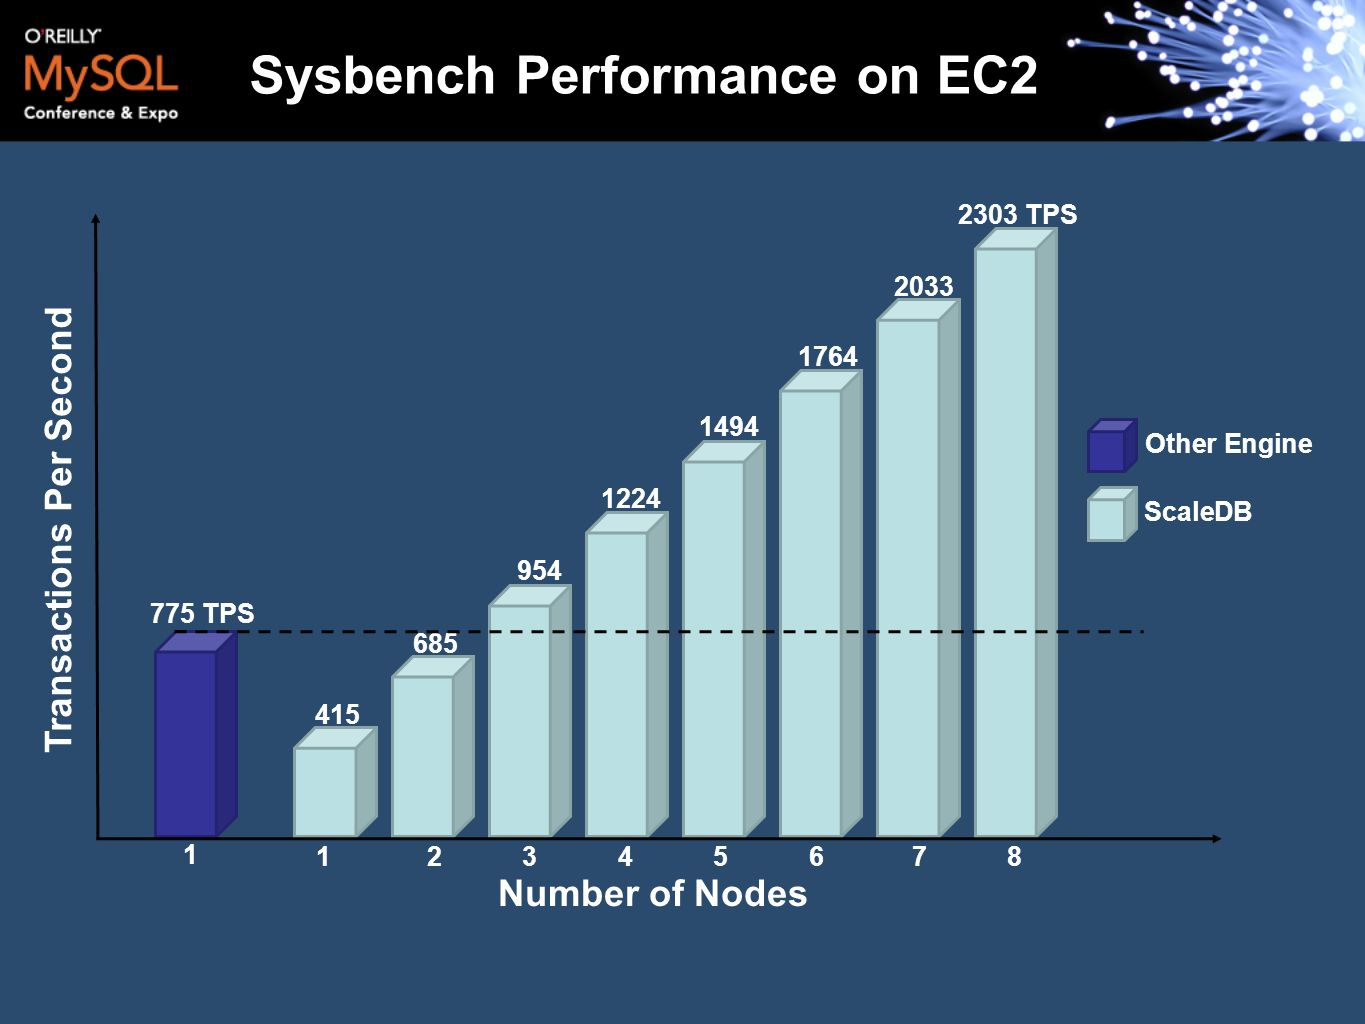 Sysbench Performance on EC2